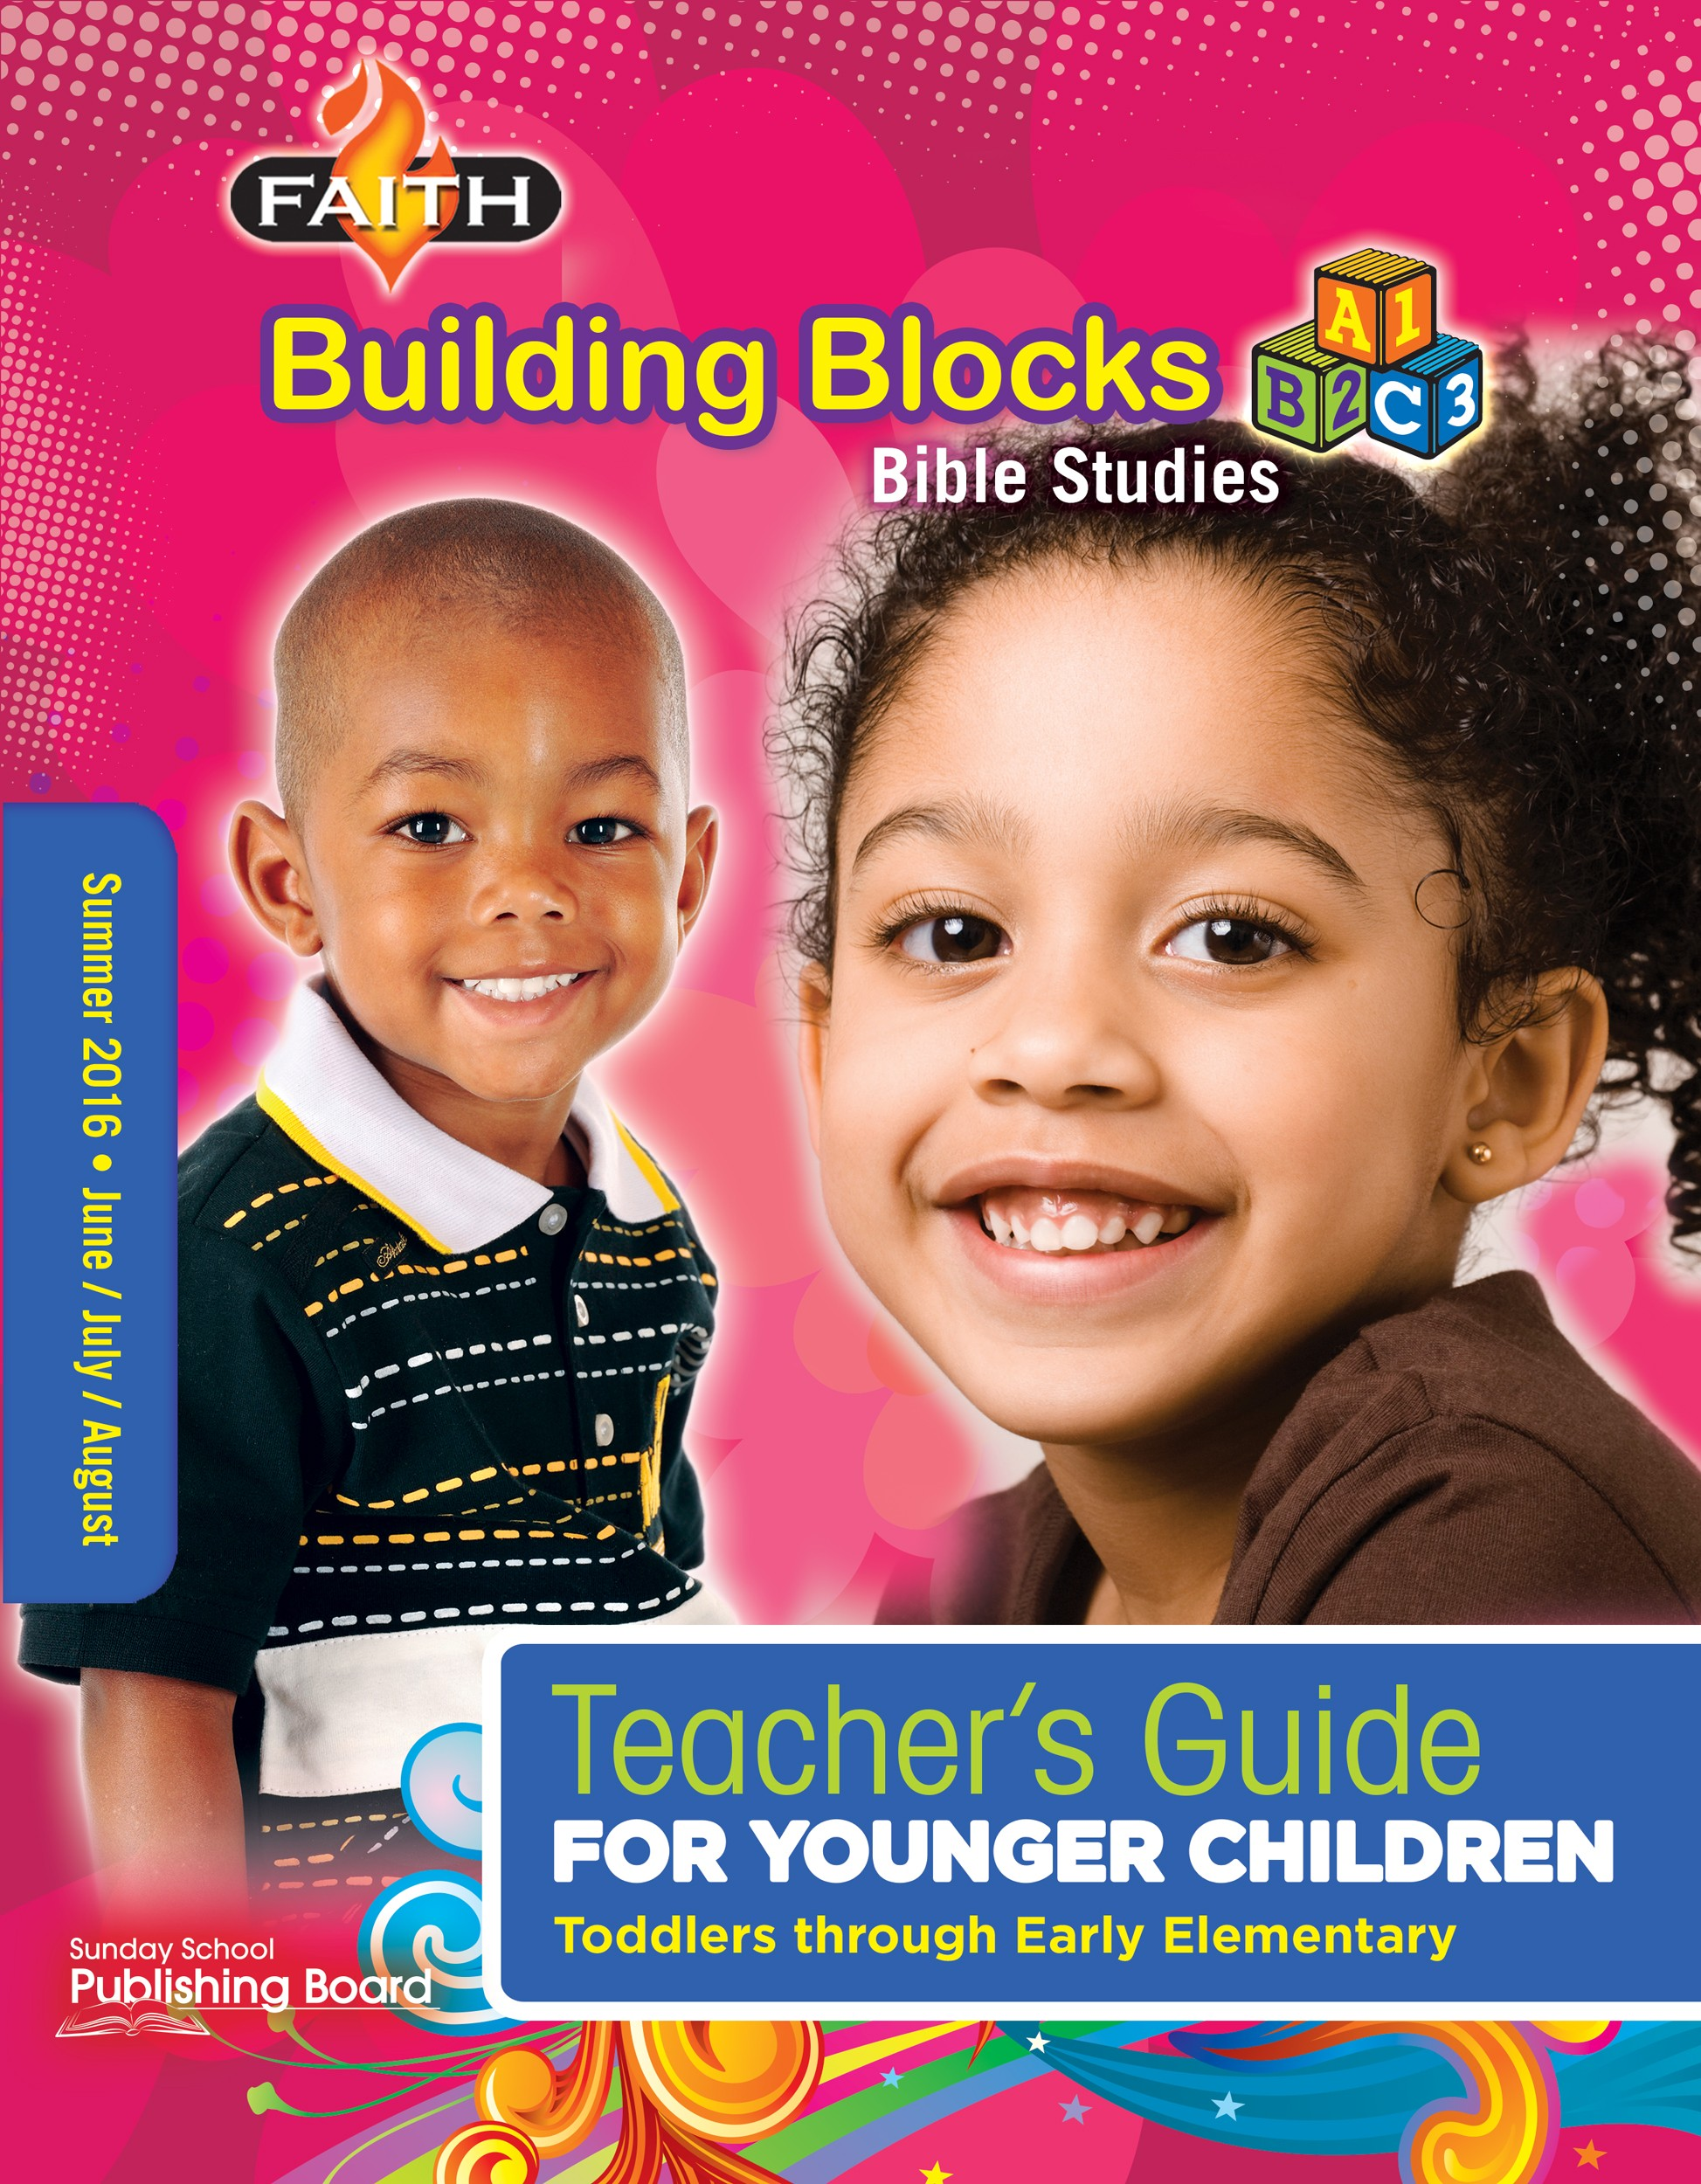 Faith Building Blocks, Teacher's Guide (Toddlers to Grade 1)